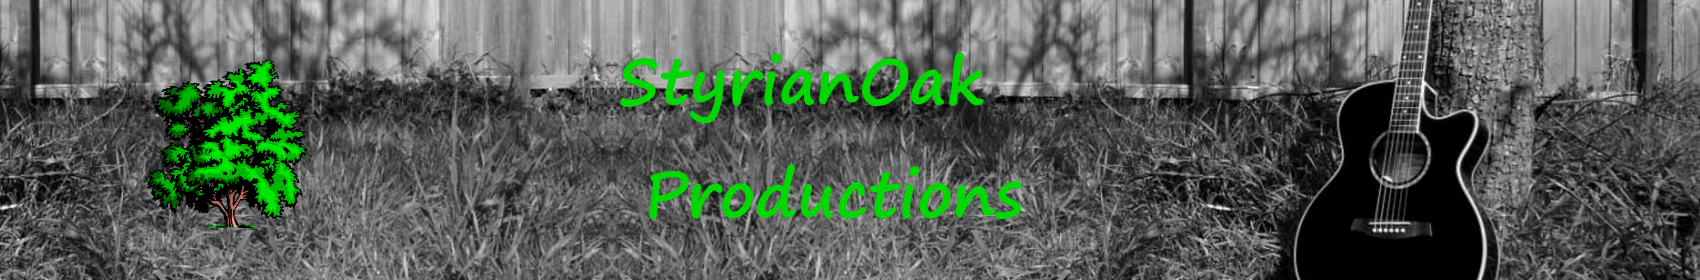 StyrianOak Header